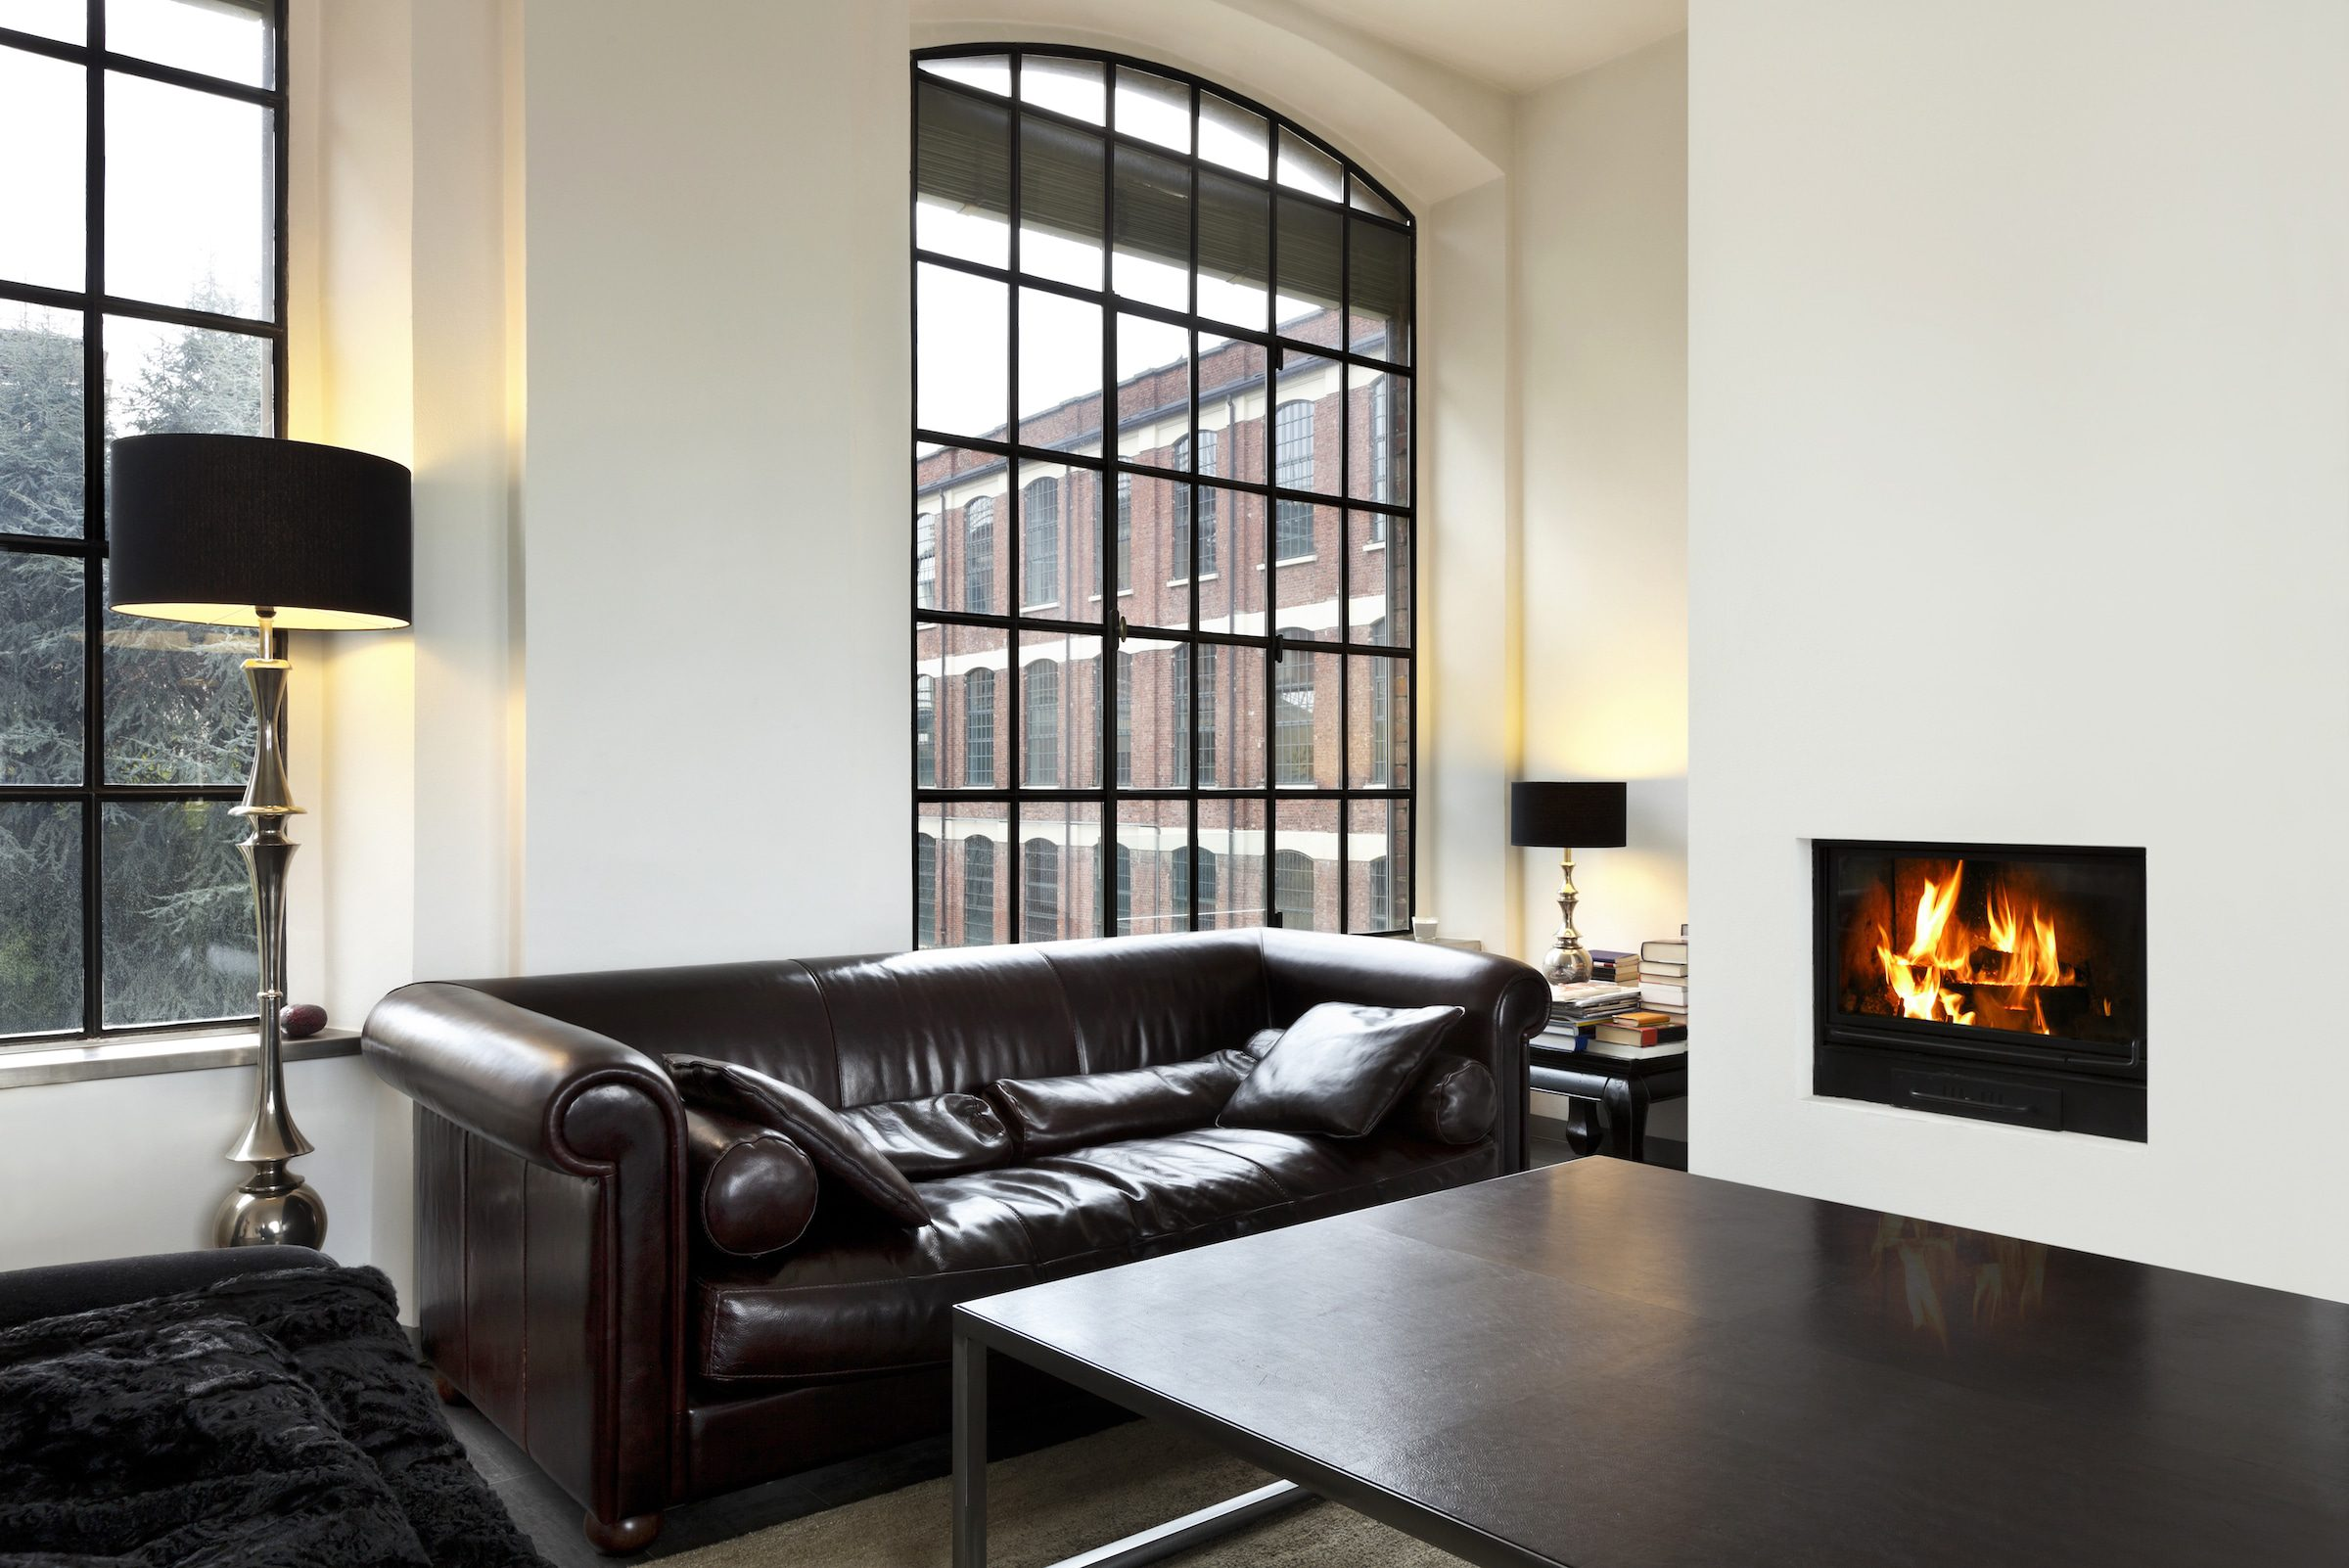 crittall style windows in a loft apartment